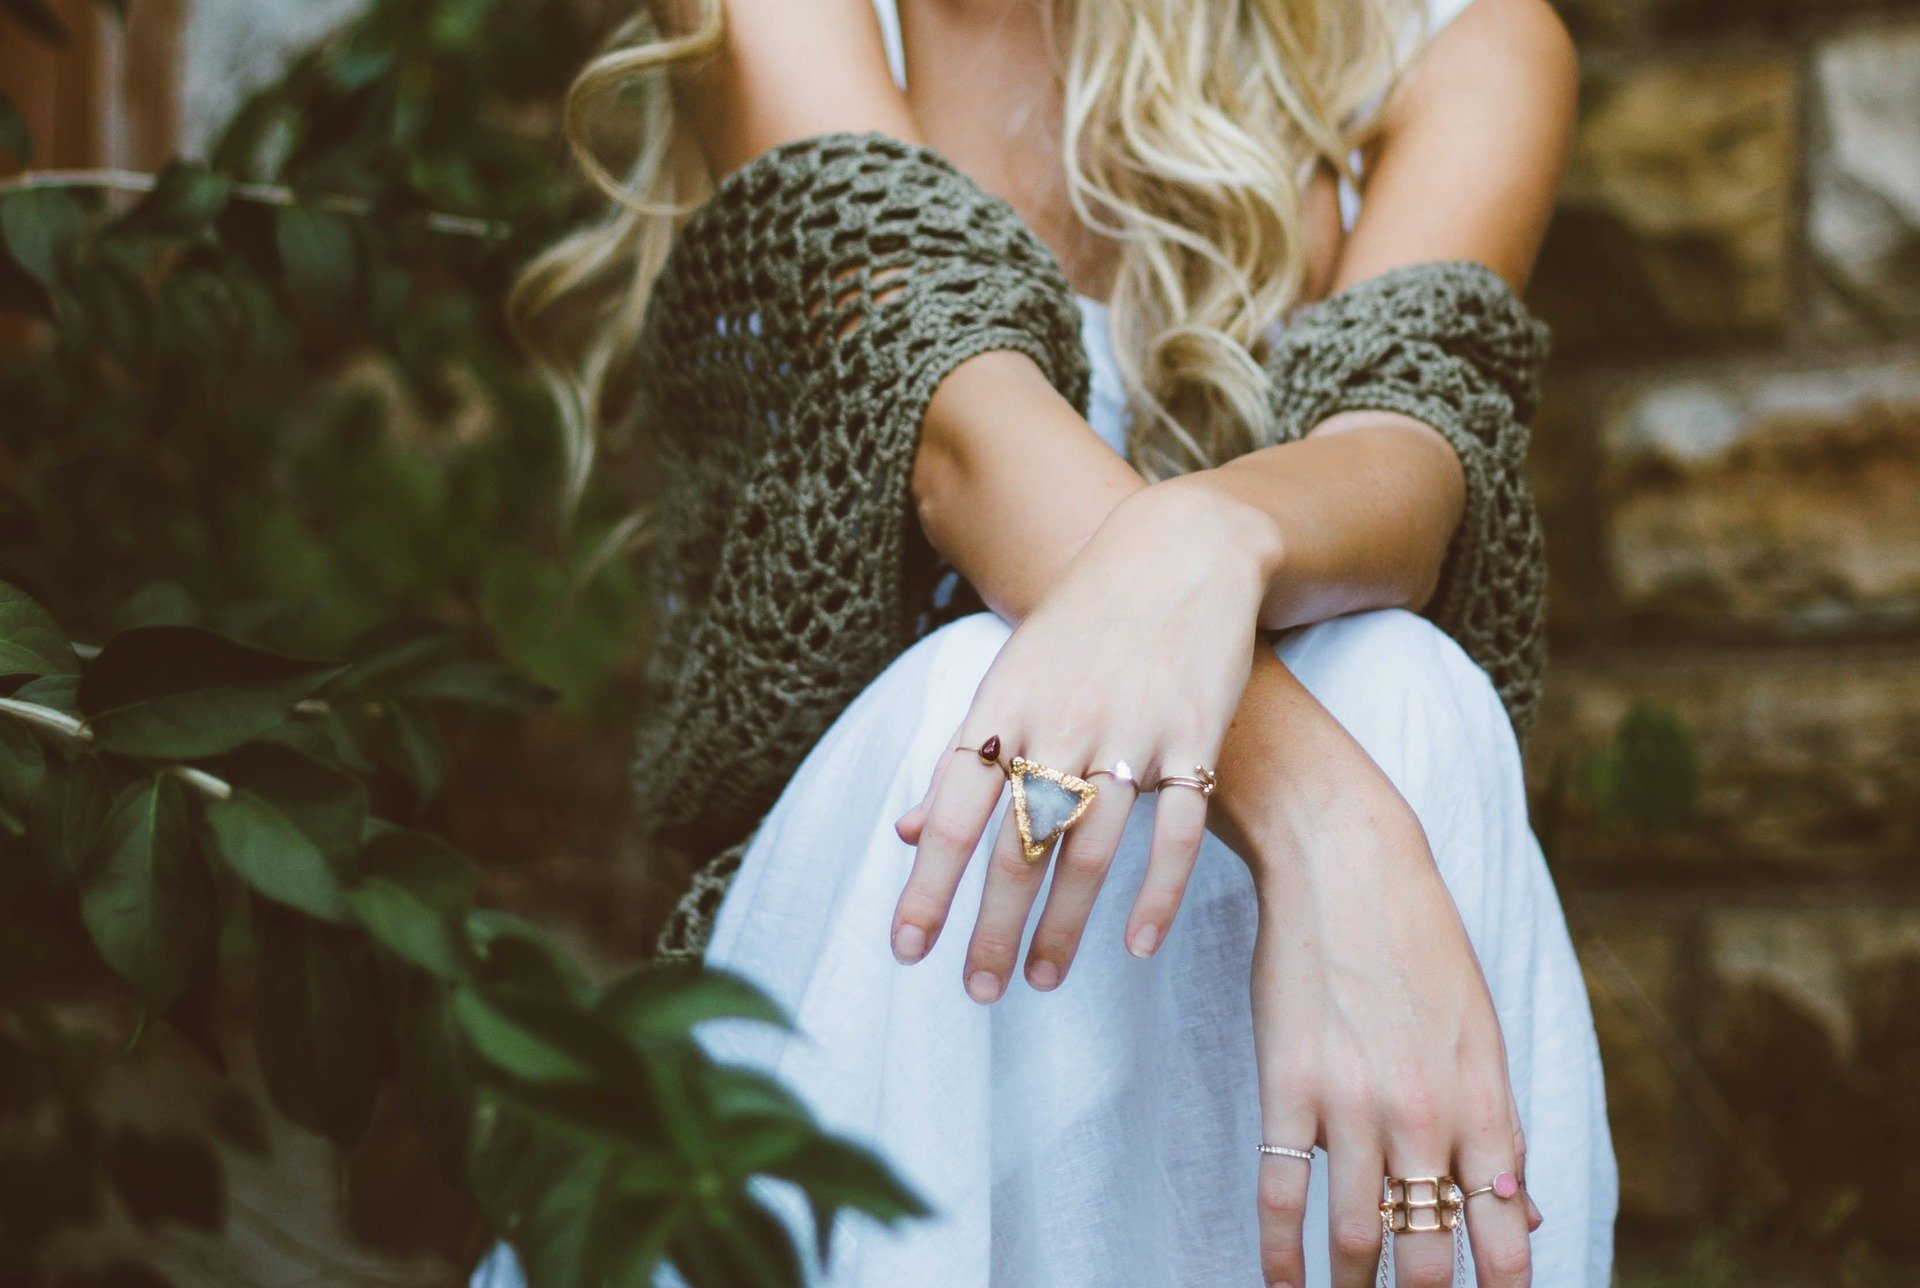 Closeup Of Person's Hands Crossed Over Knees, Wearing Rings, Youthful, Sitting Beside Plants, Anti-ageing For Hands